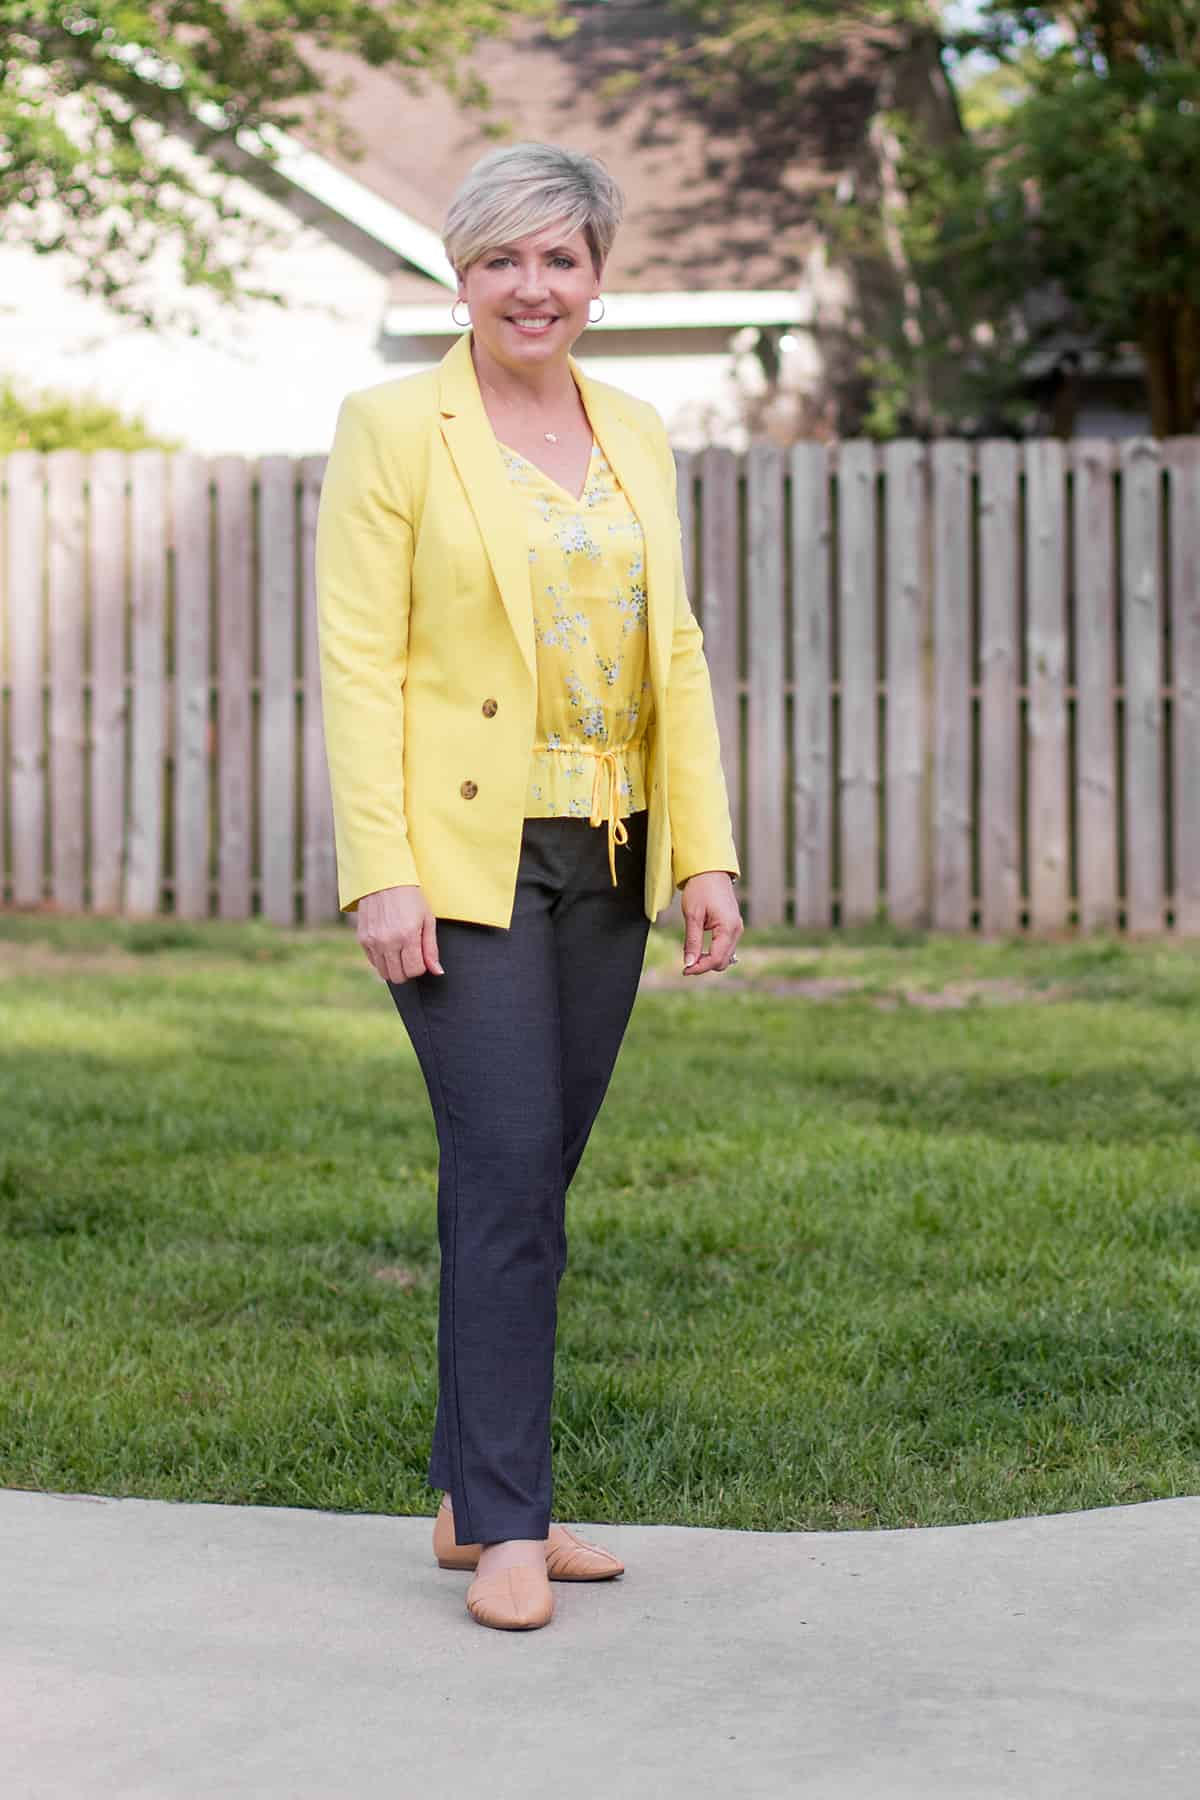 yellow blazer and grey pants work wear outfit